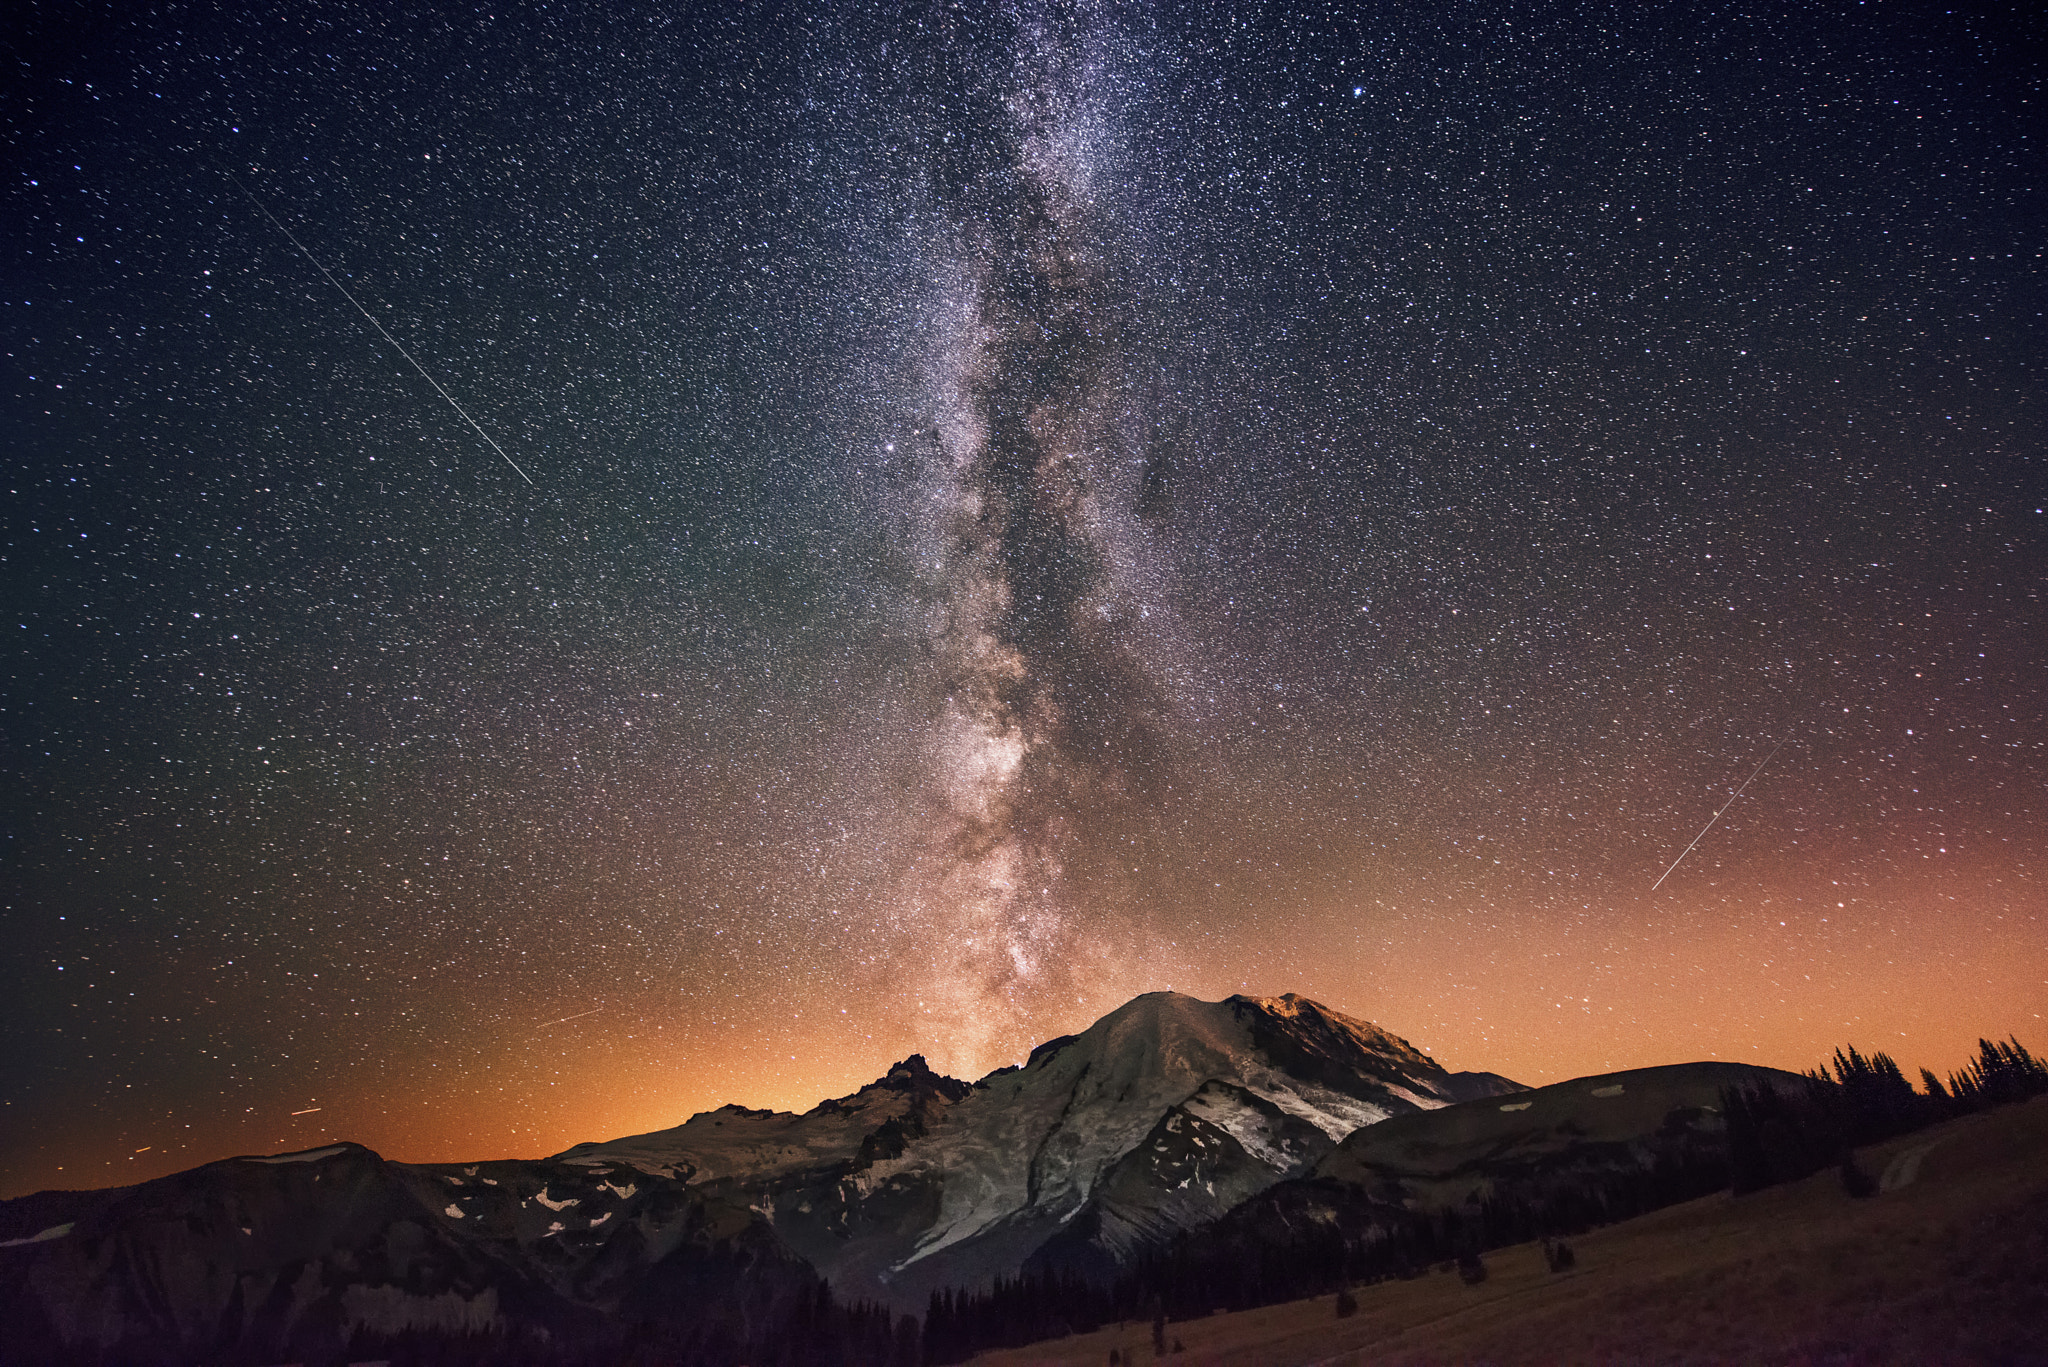 Photograph Shoot Me to the Stars: FREE Star Photography Tutorial Included by Dave Morrow on 500px